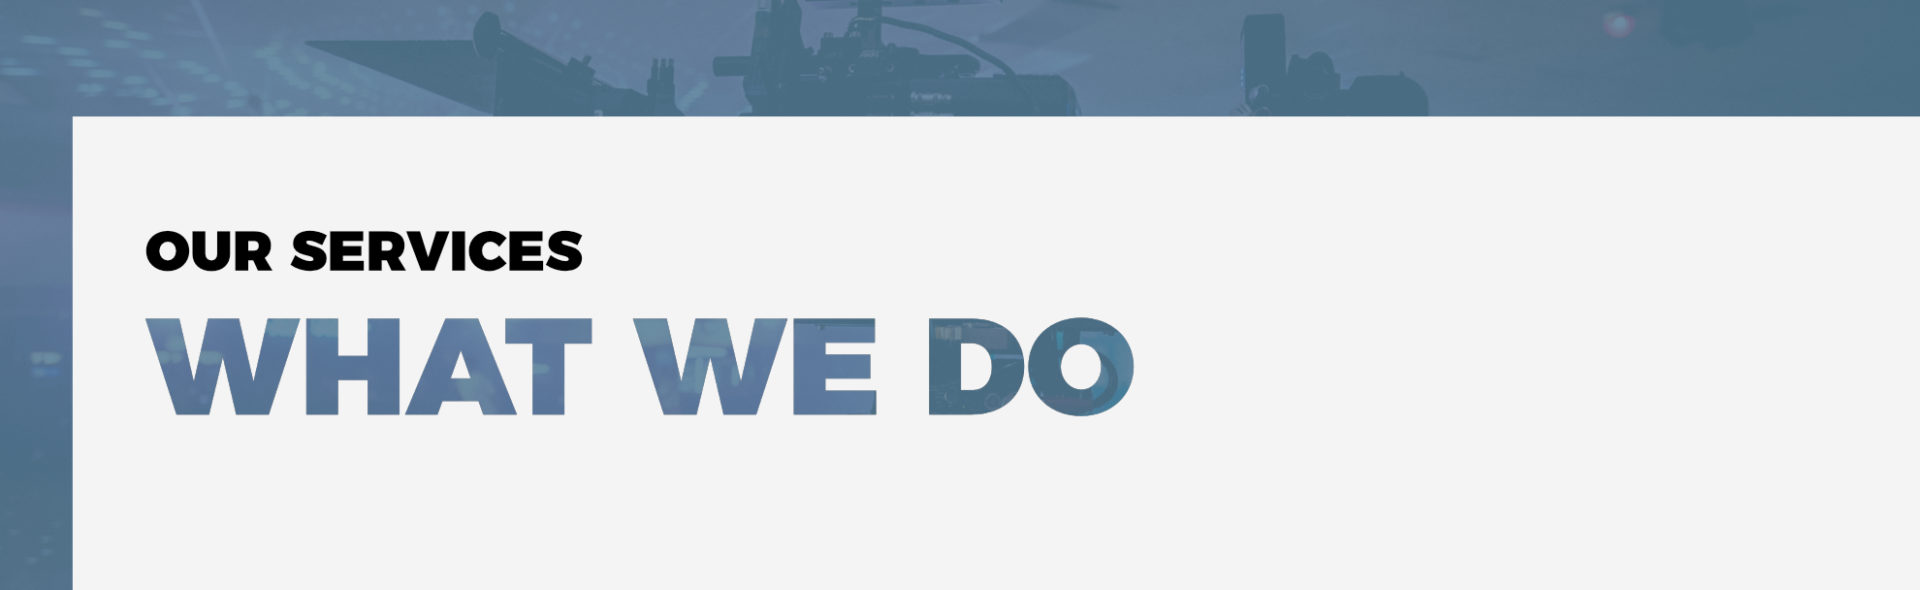 Our Services - What We Do